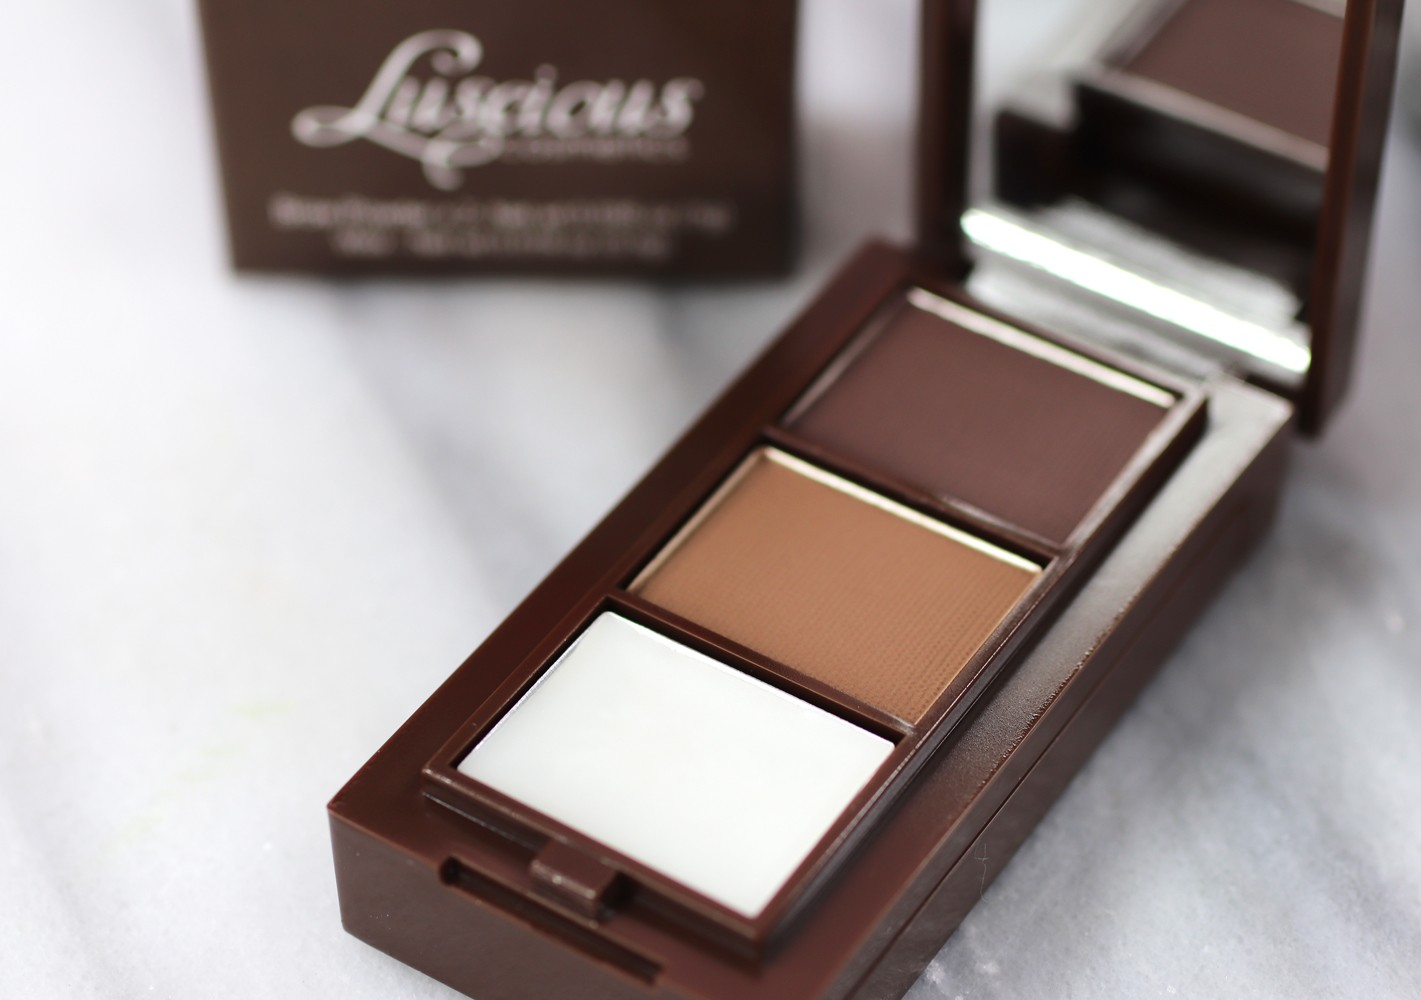 Luscious Cosmetics Brow Luxe Tool Kit - Luscious Cosmetics Review and Try On by popular LA cruelty free beauty blogger My Beauty Bunny